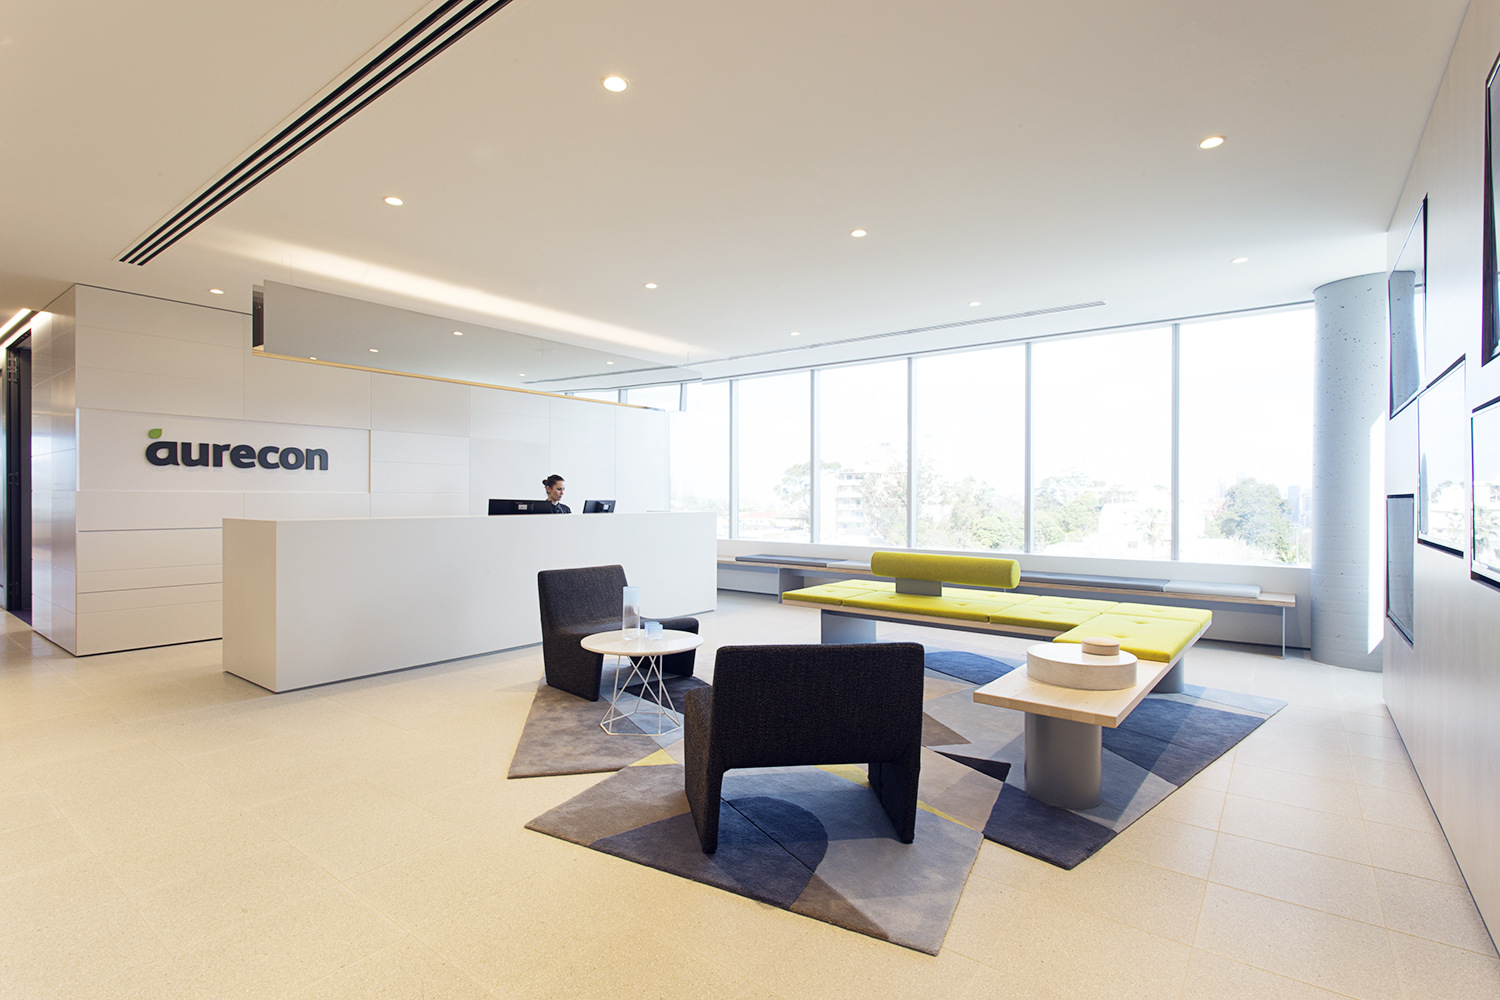 futurespace-aurecon-office-design-1.jpg